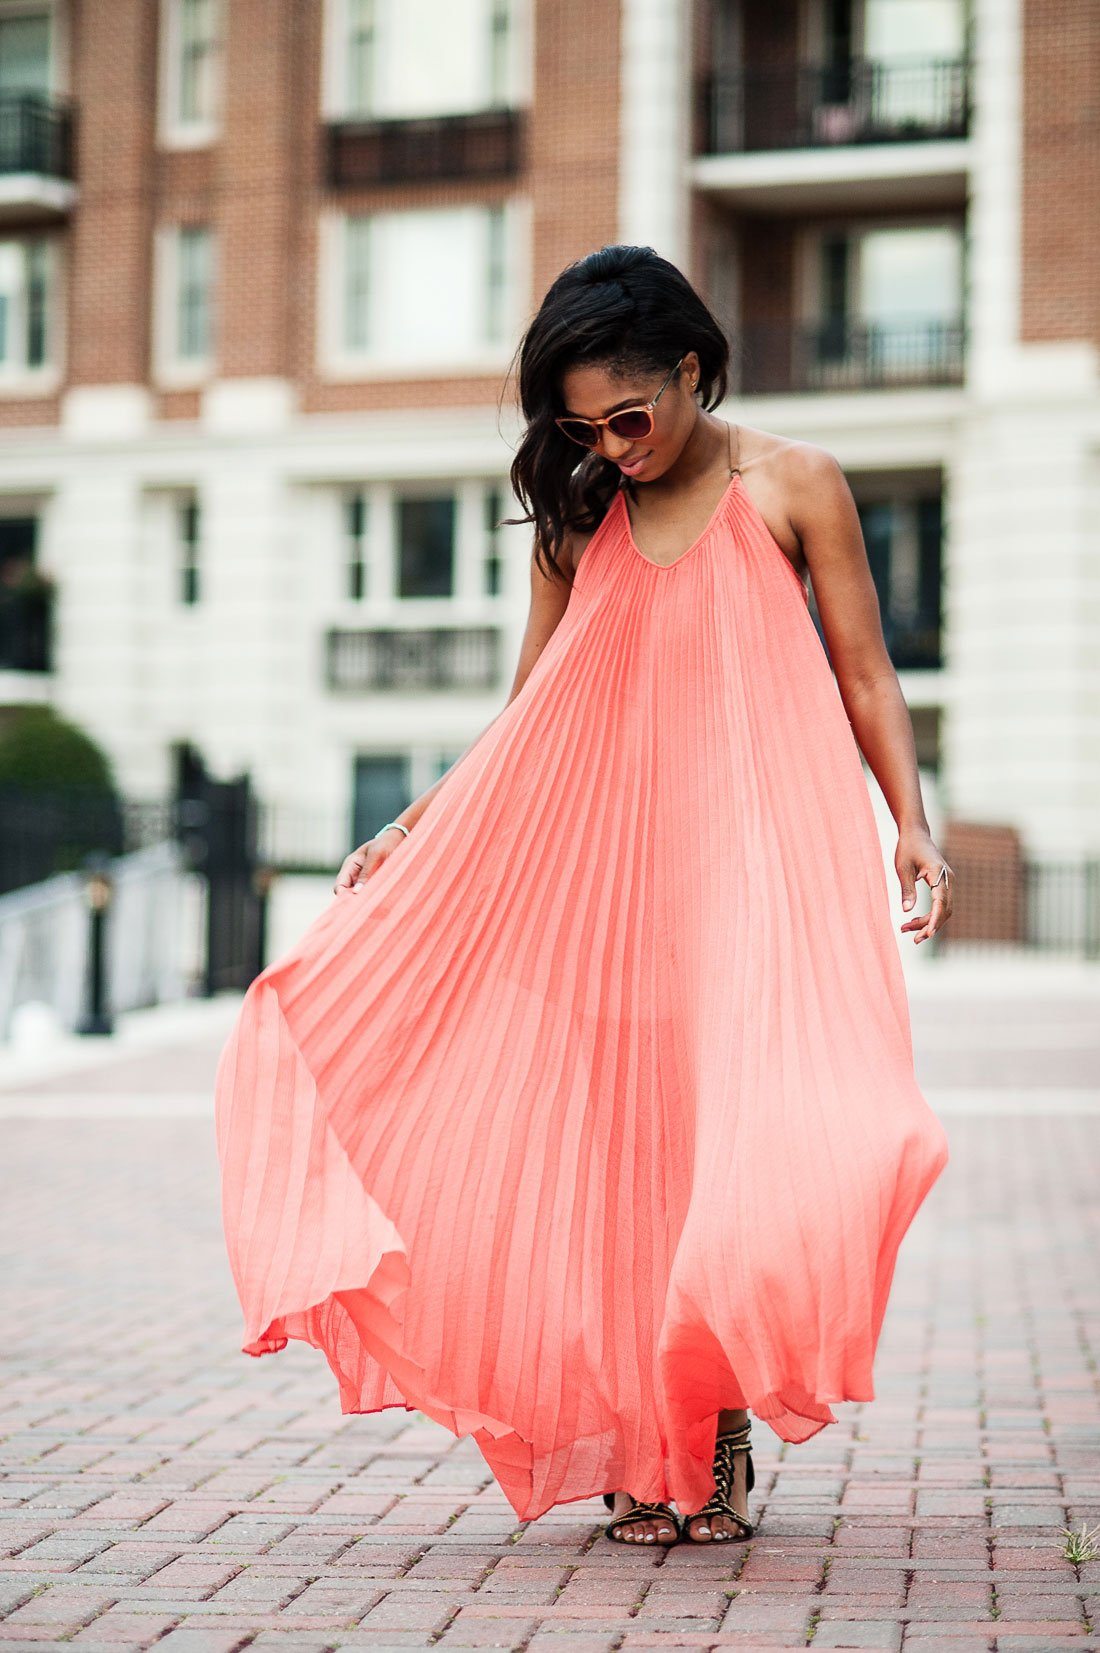 Four One Oh! | Baltimore Fashion Blogger - Personal Style & Food Blog Written by Tia Nicole